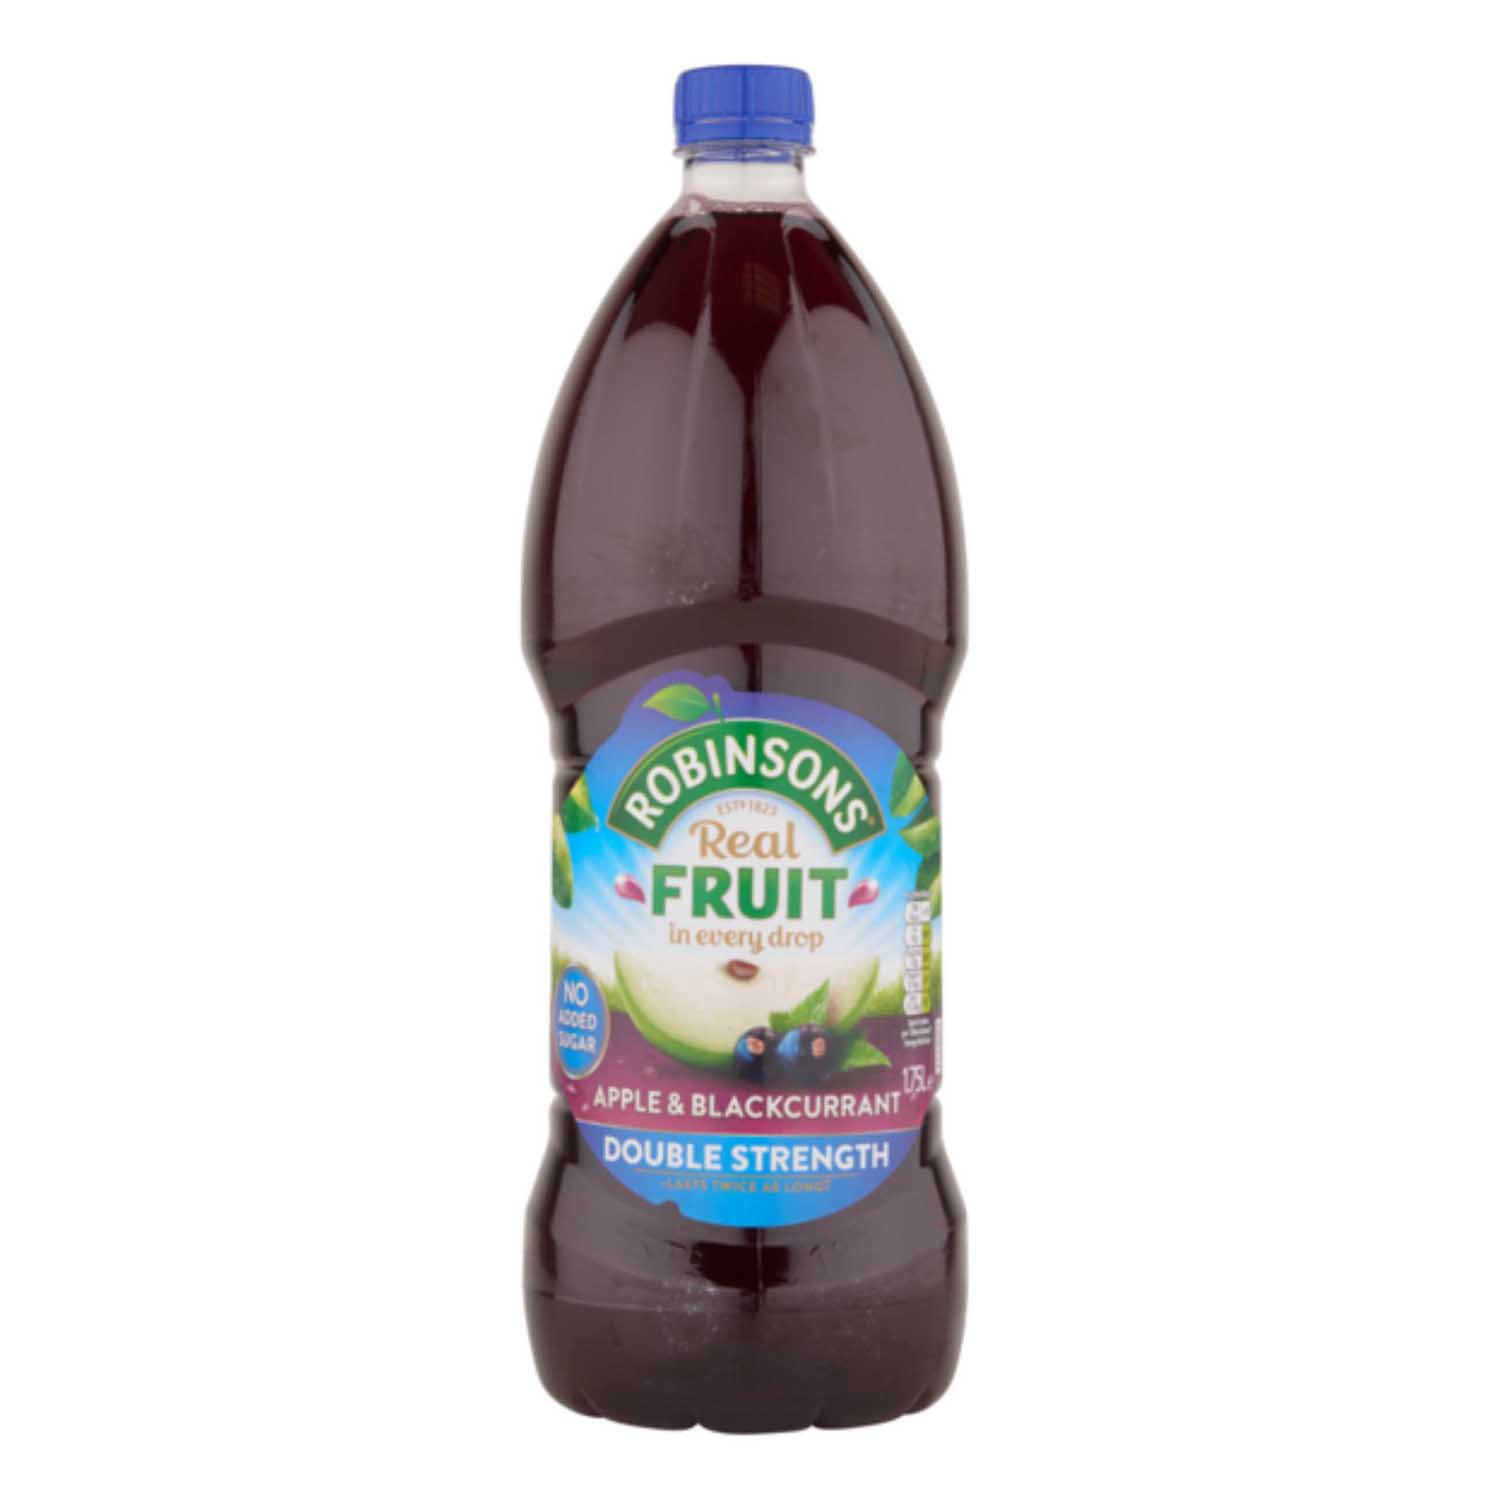 Robinsons Squash Double Concentrate No Added Sugar 1.75 Litres Apple & Blackcurrant Ref 200660 Pack 2